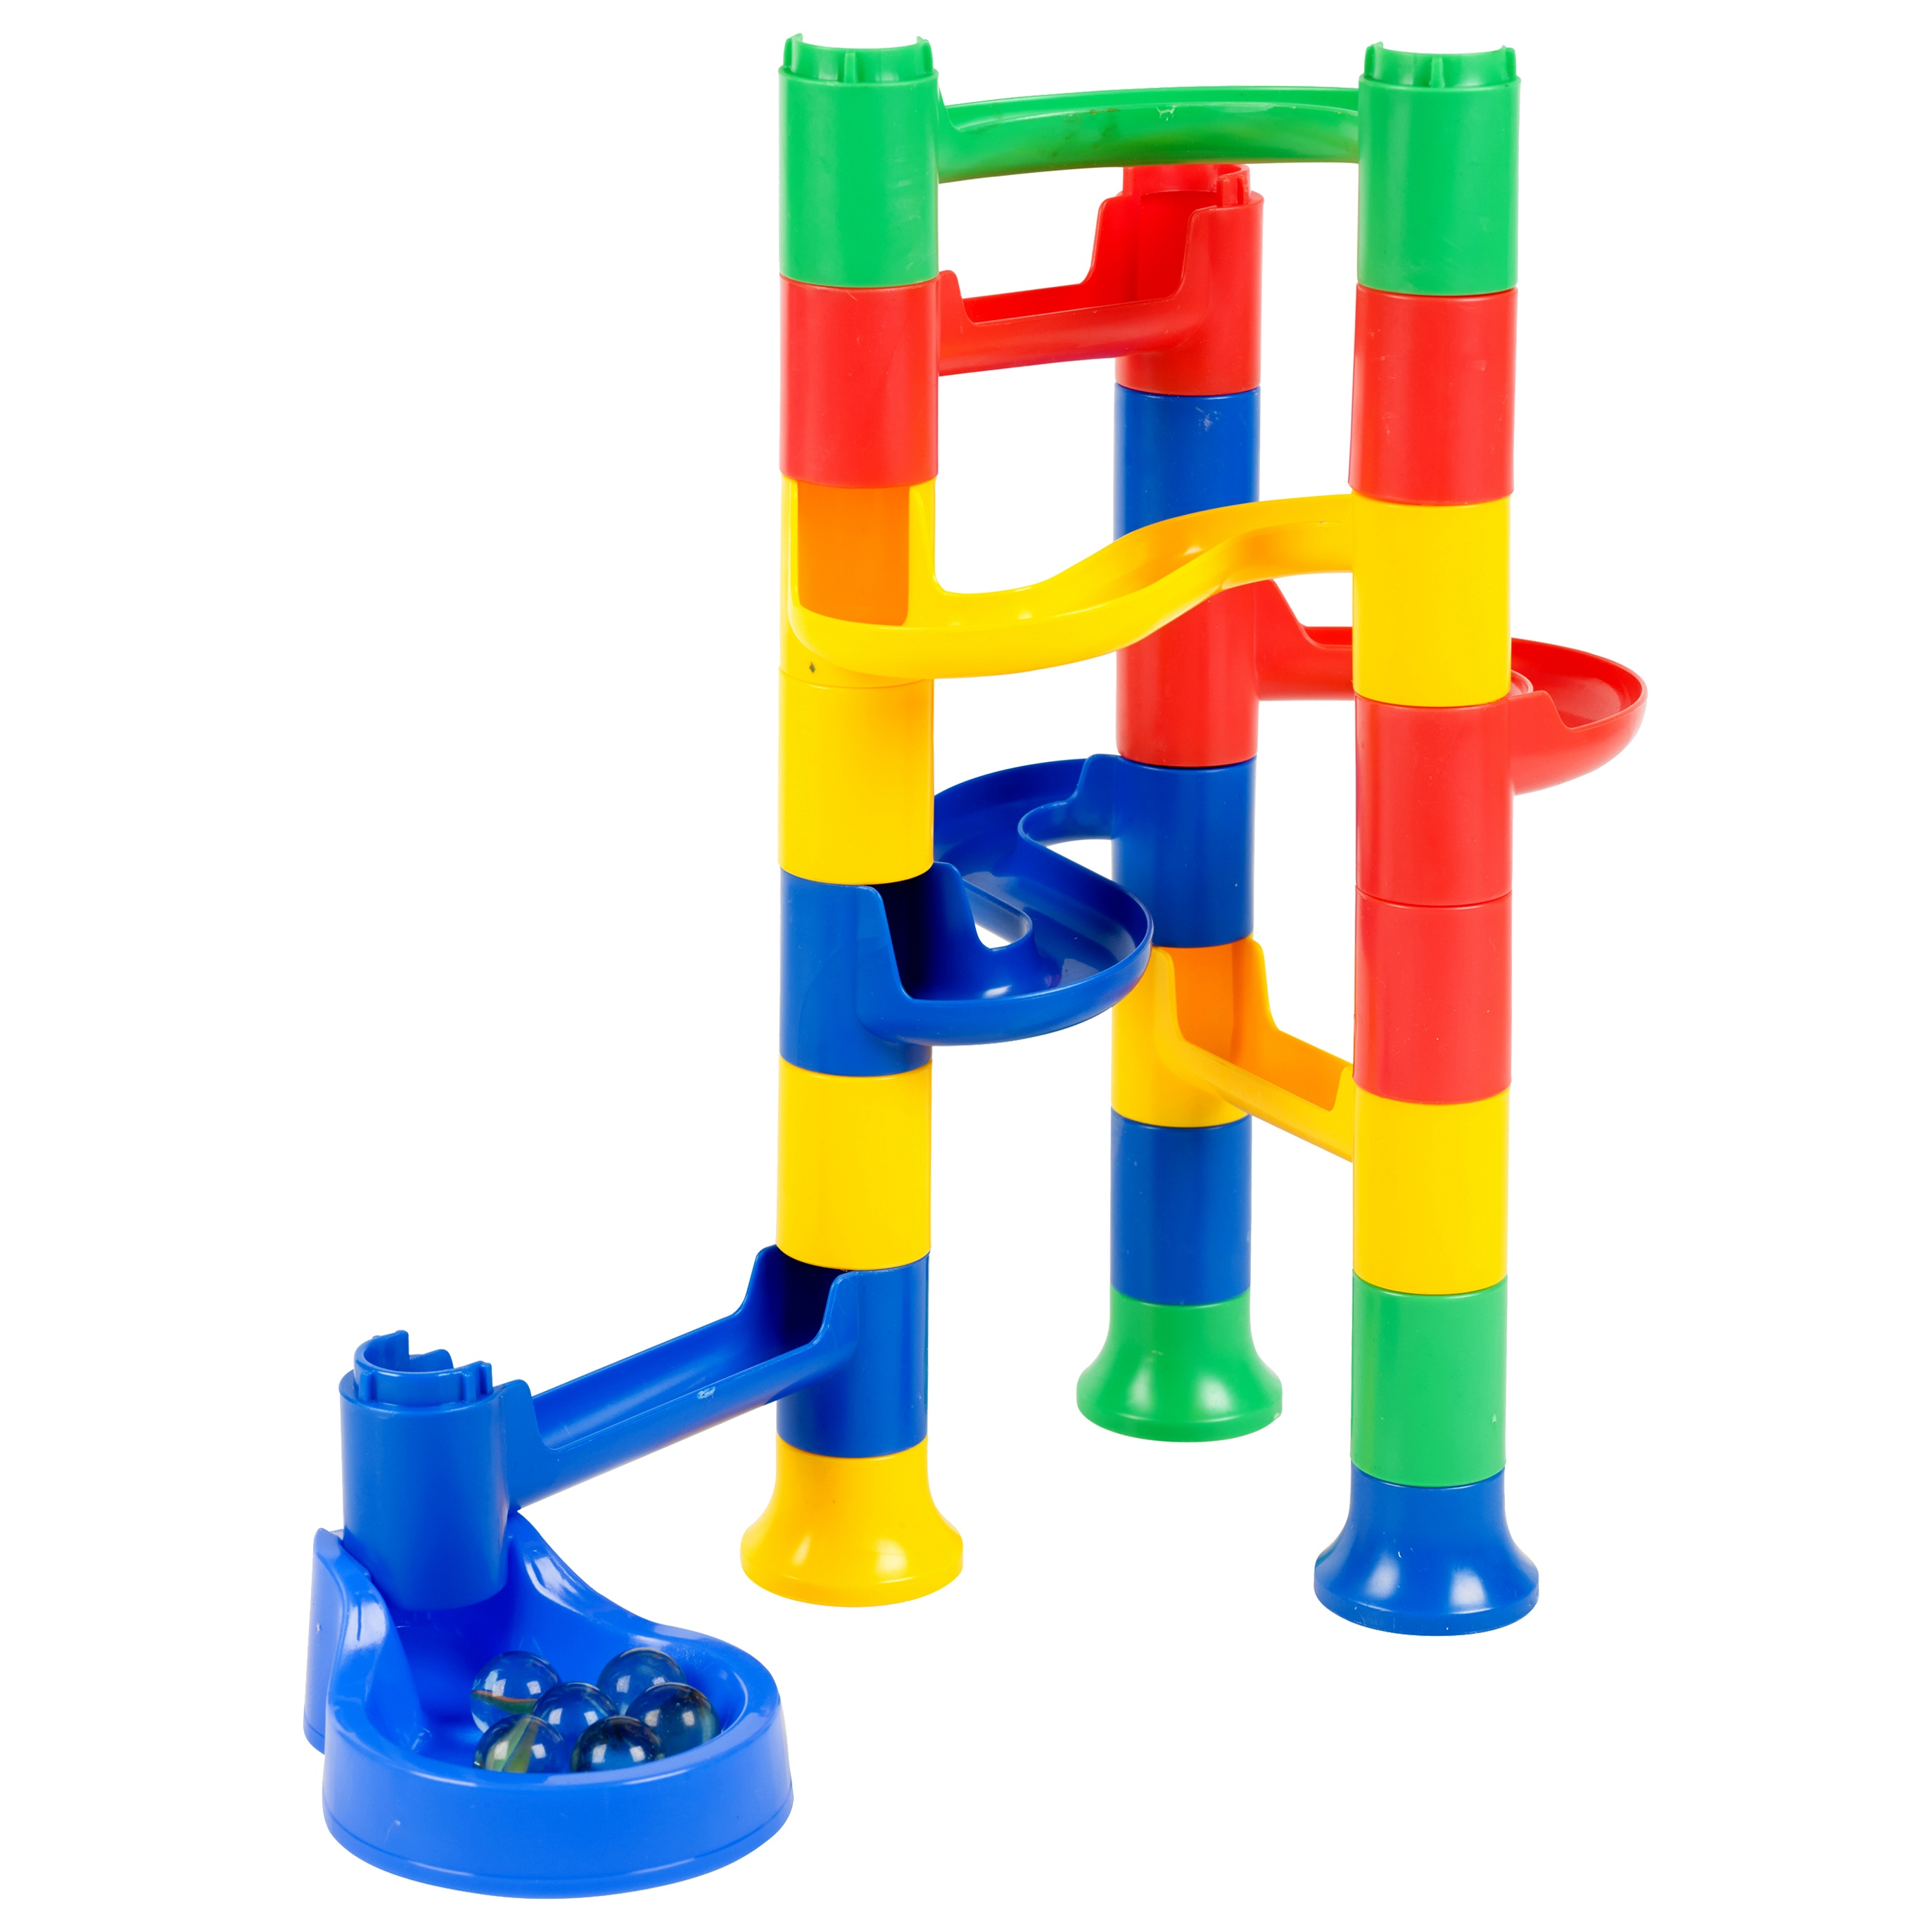 Kids Marble Run Race Construction Kit Childrens Toy Creative